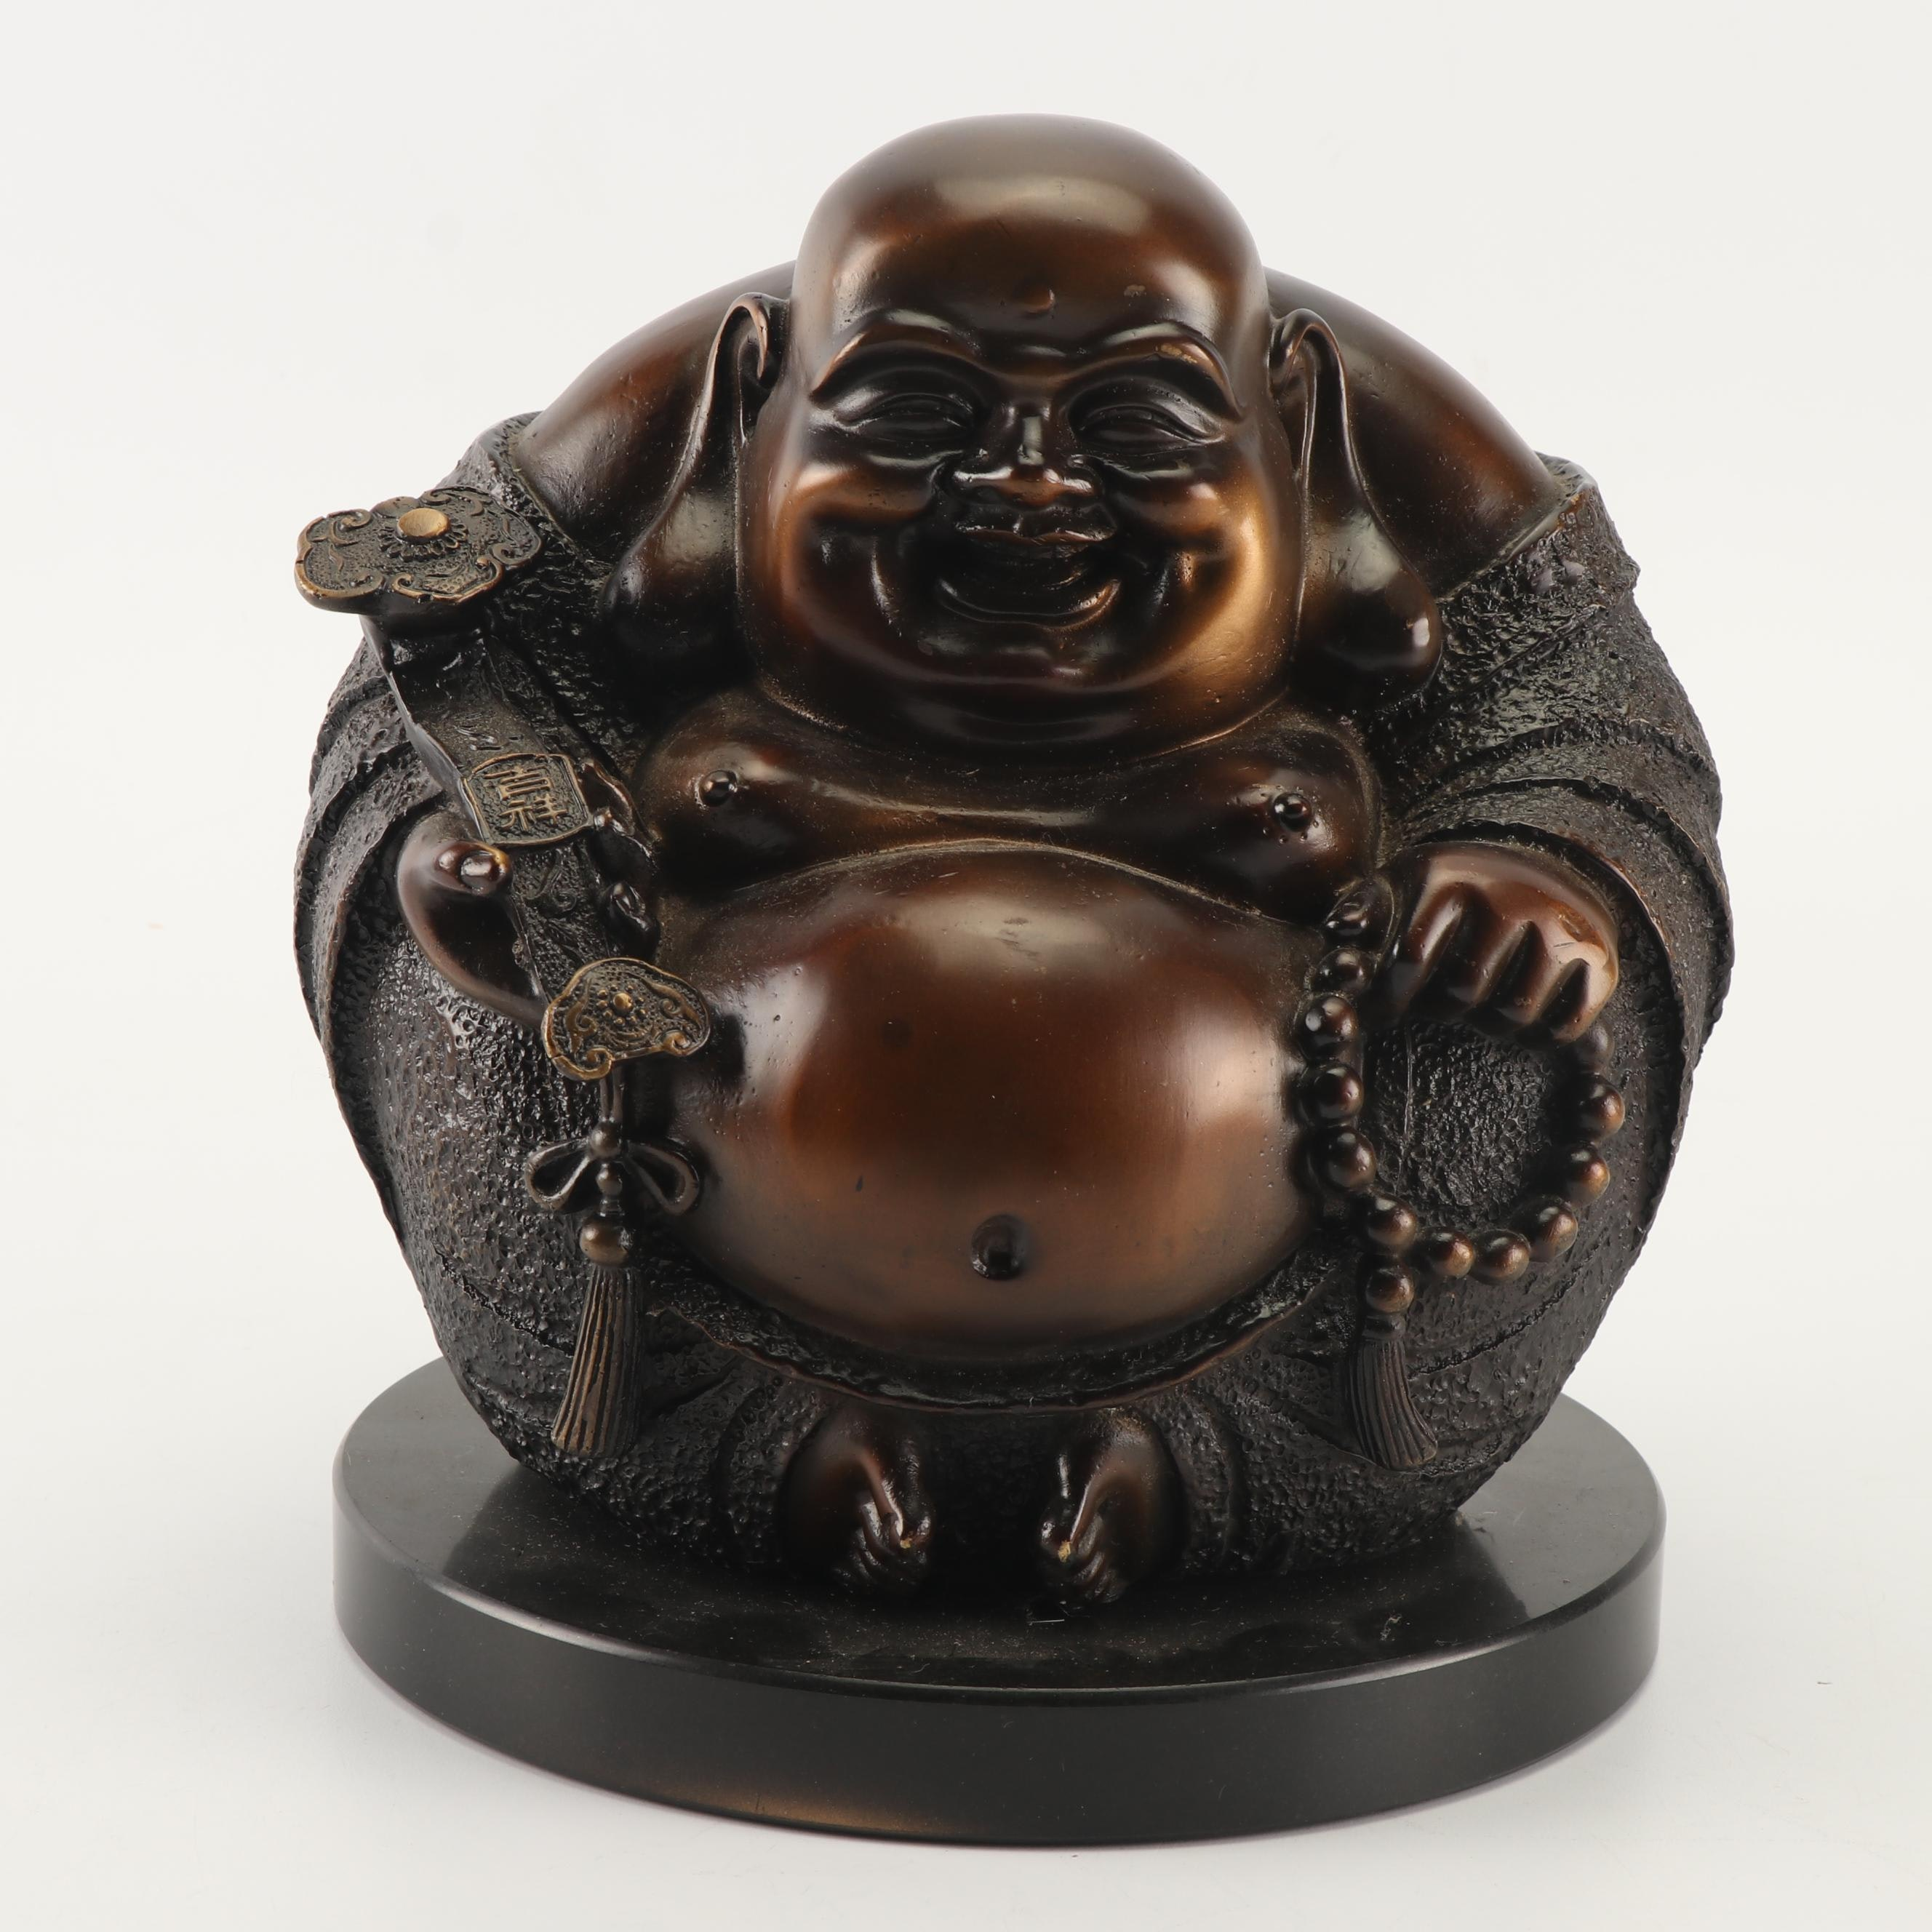 Chinese Cast Metal Budai Sculpture